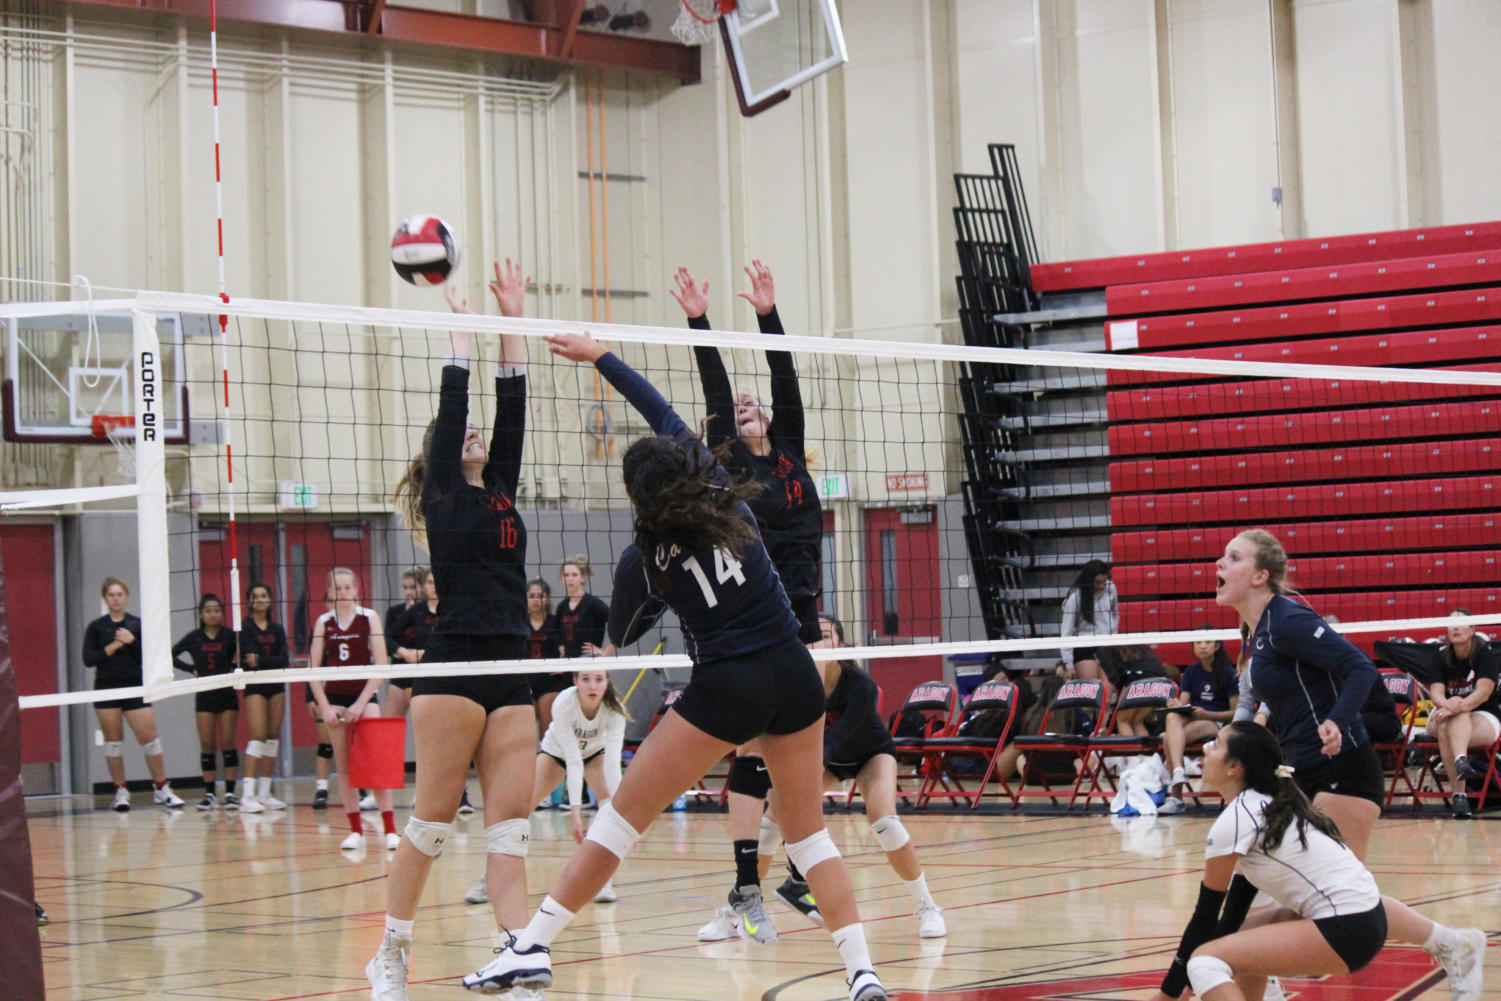 Freshman hitter Curly Raddavero spikes the ball in the first set.